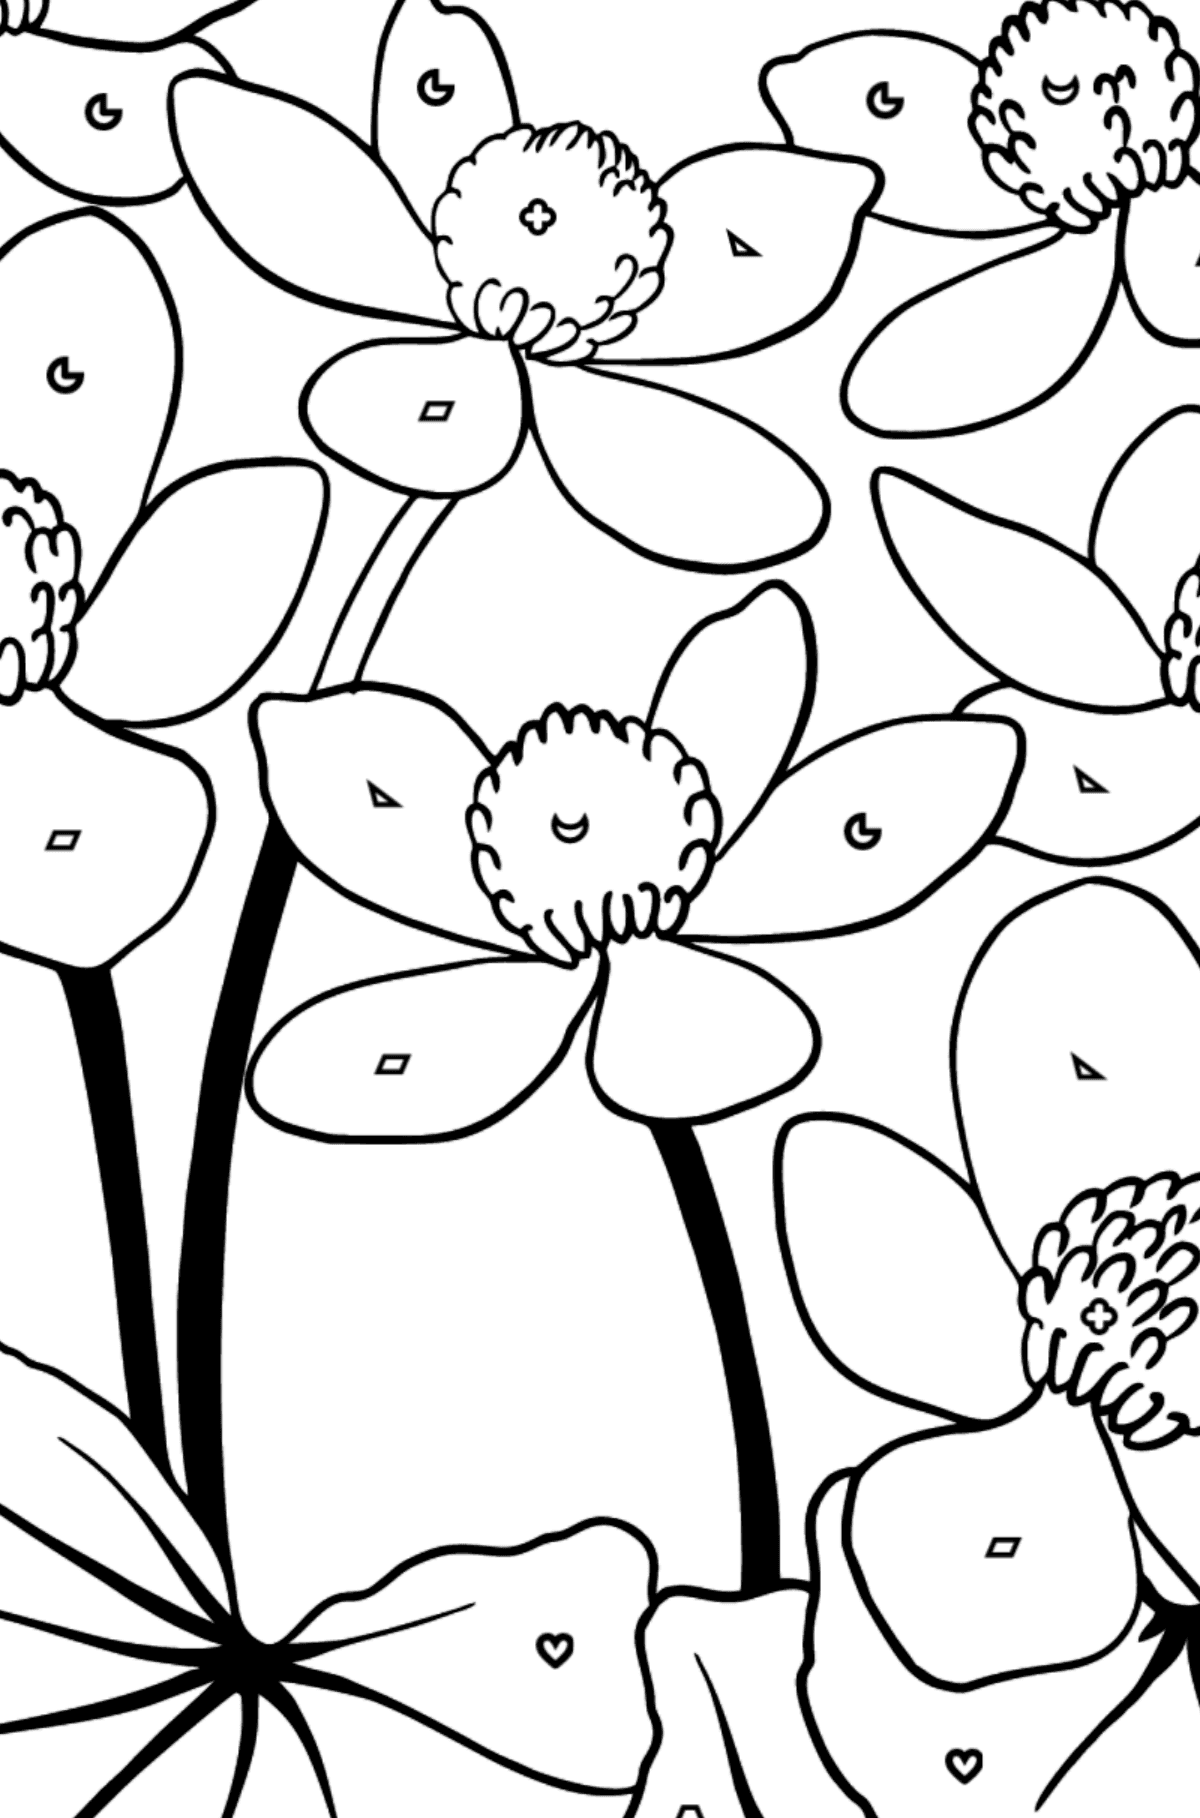 Flower Coloring Page - Marsh Marigold - Coloring by Geometric Shapes for Kids